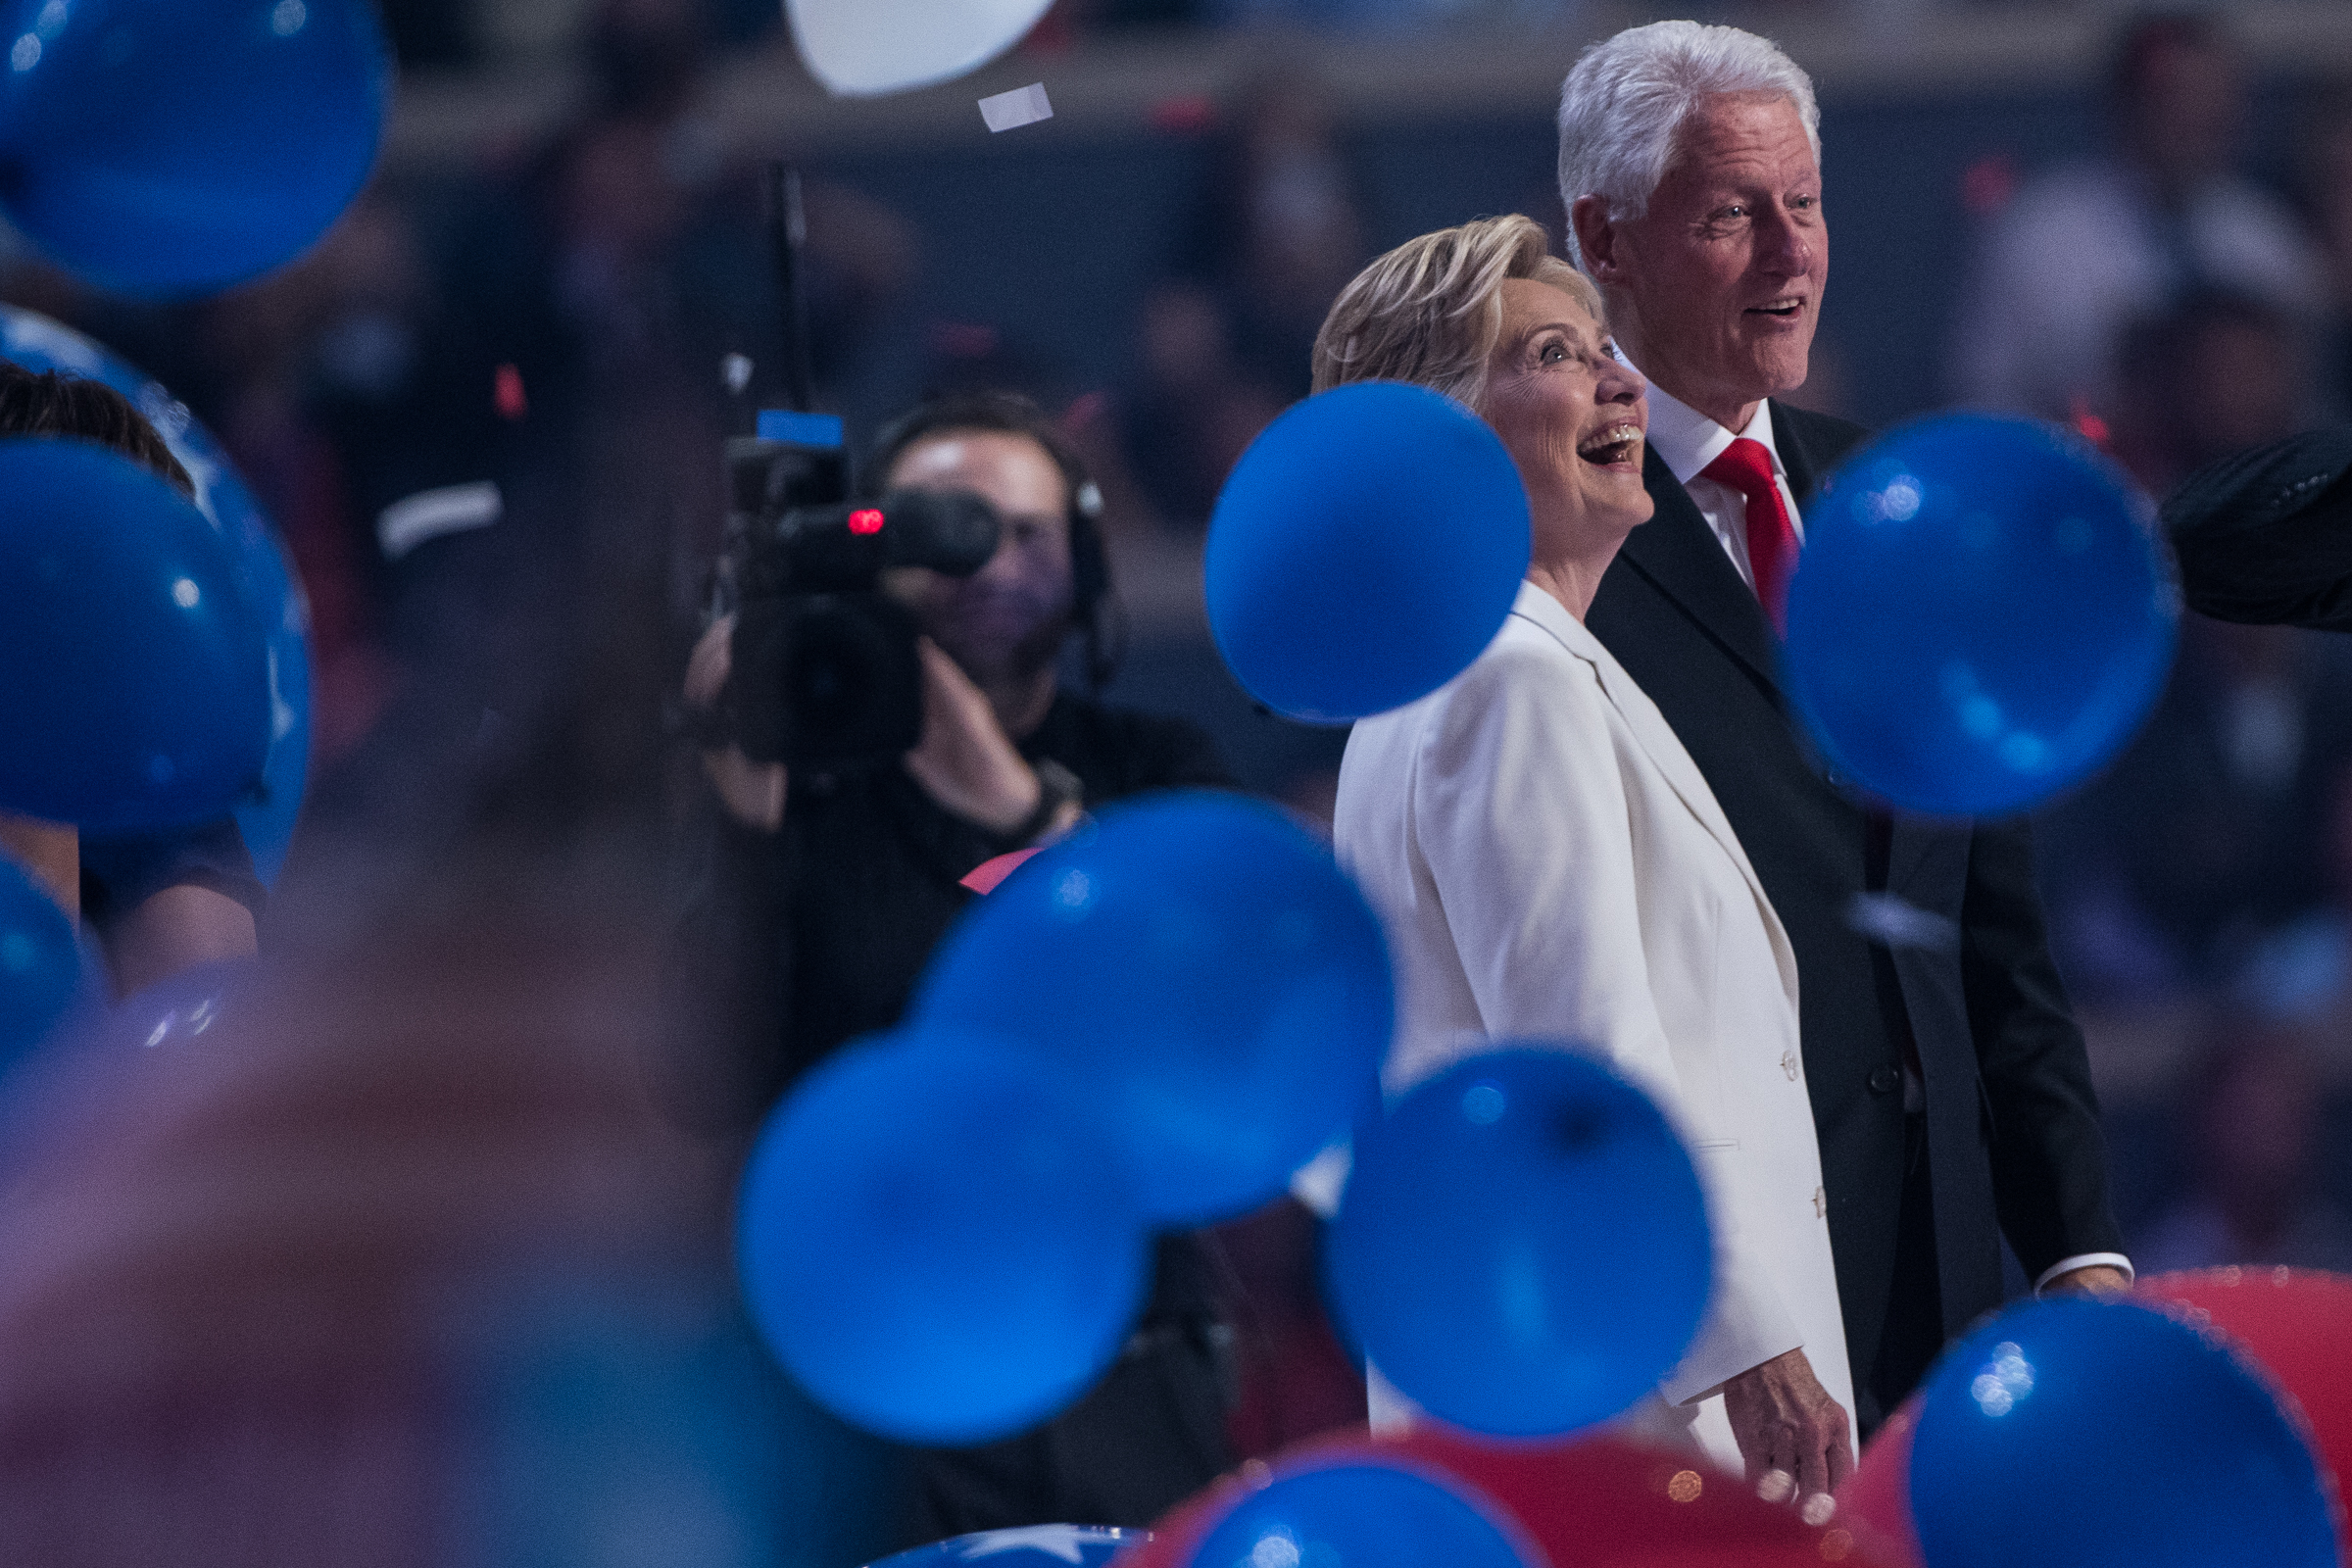 Democratic presidential nominee Hillary Clinton celebrates her party's nomination with former president Bill Clinton at the Democratic National Convention inside the Wells Fargo Center in Philadelphia on Thursday July 28, 2016. (Michael Ares / Philadelphia Inquirer)